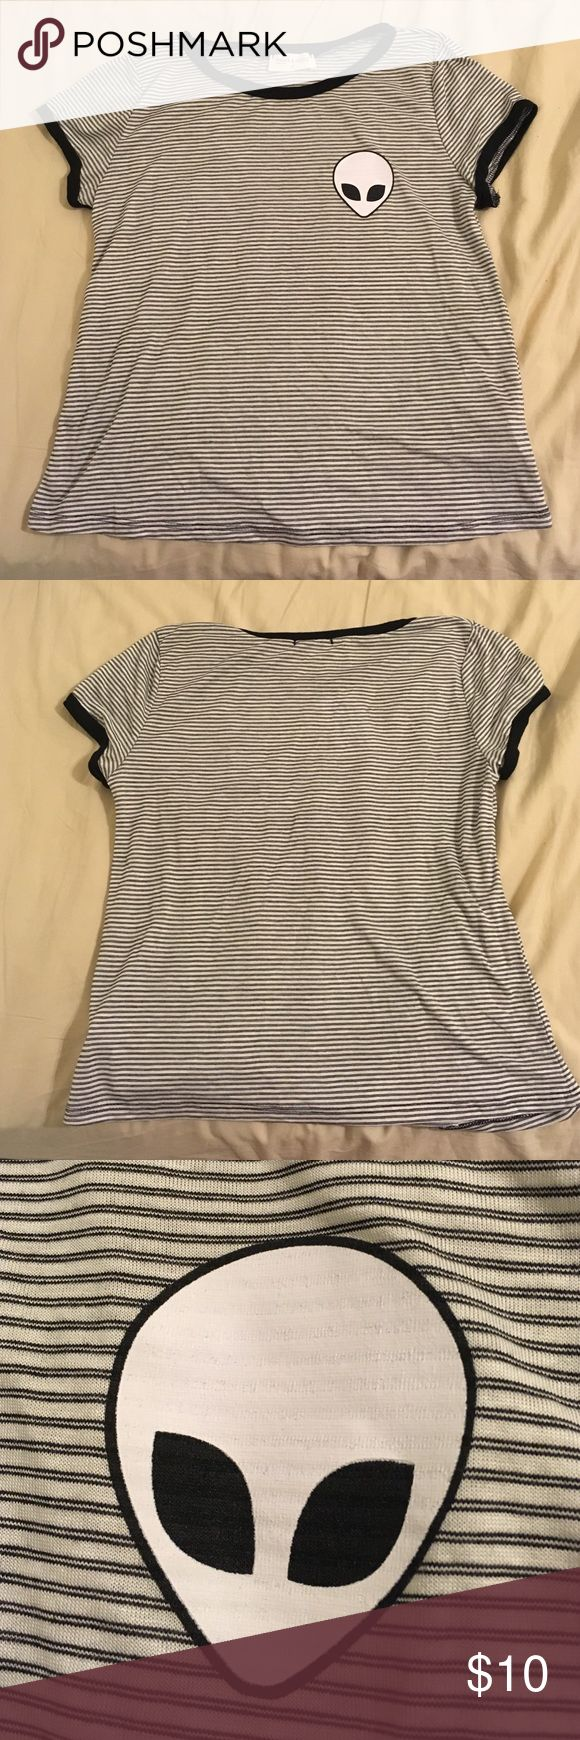 Alien Black and White Striped Ringer Tee Black and white striped ringer with alien on top left part of shirt. french pastry Tops Tees - Short Sleeve